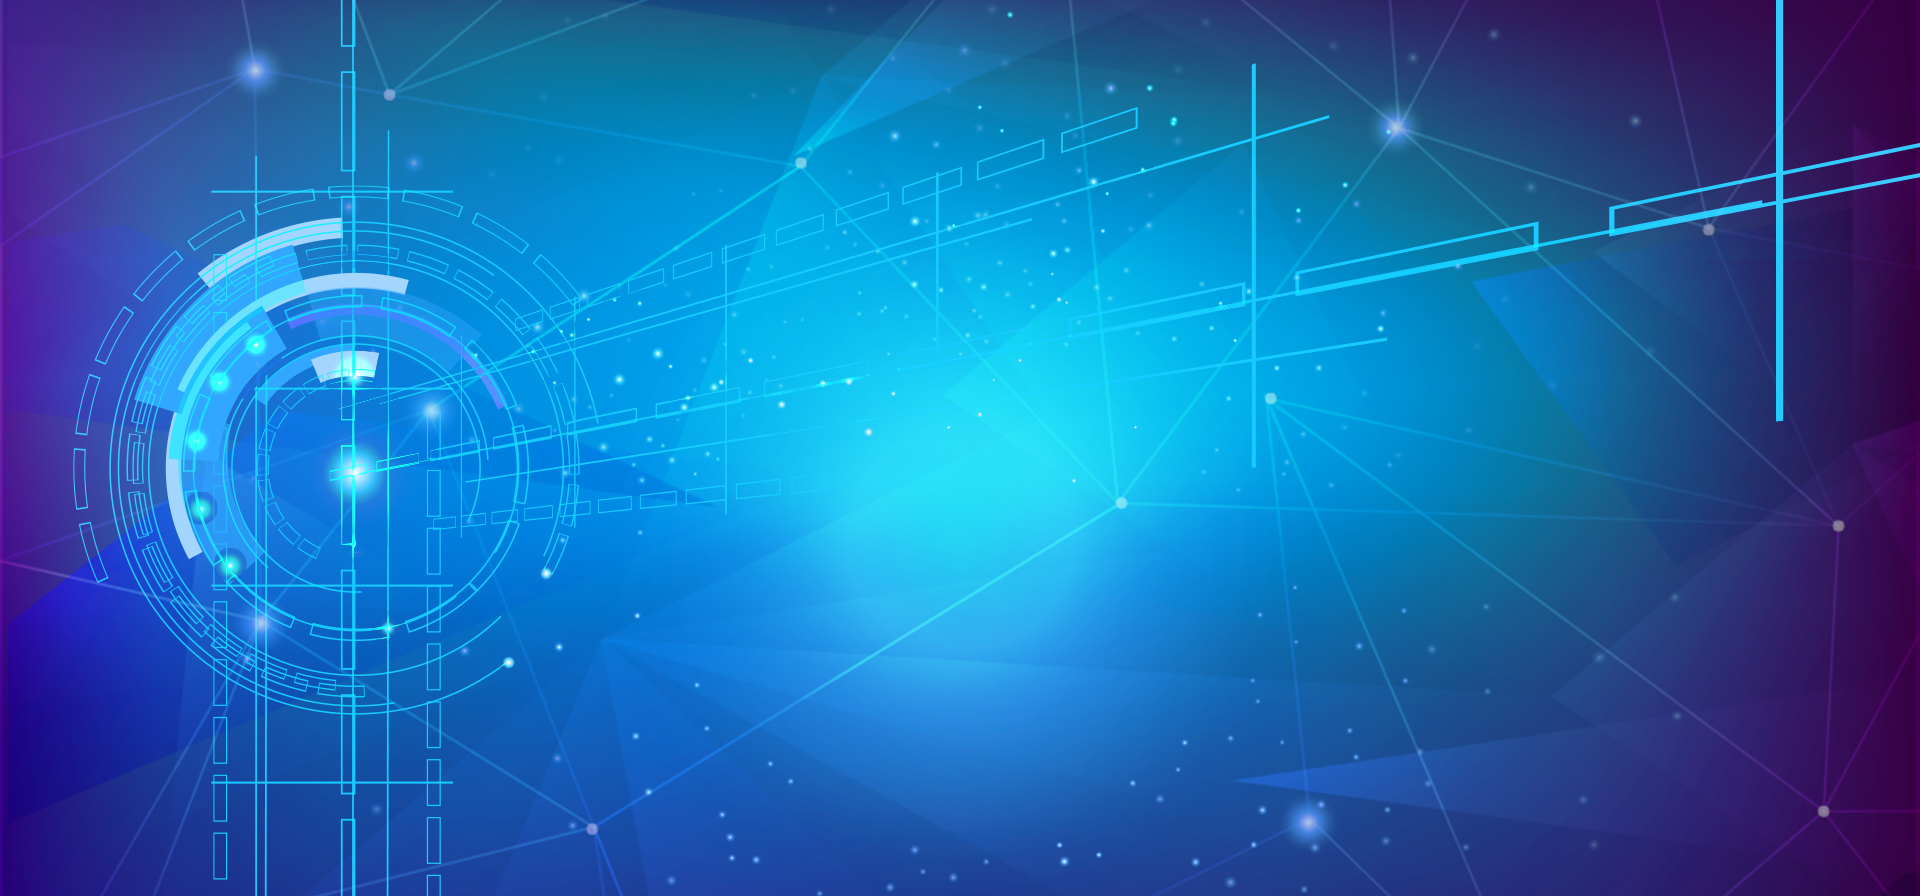 technical feeling blue poster banner background  blue  science  technology background image for